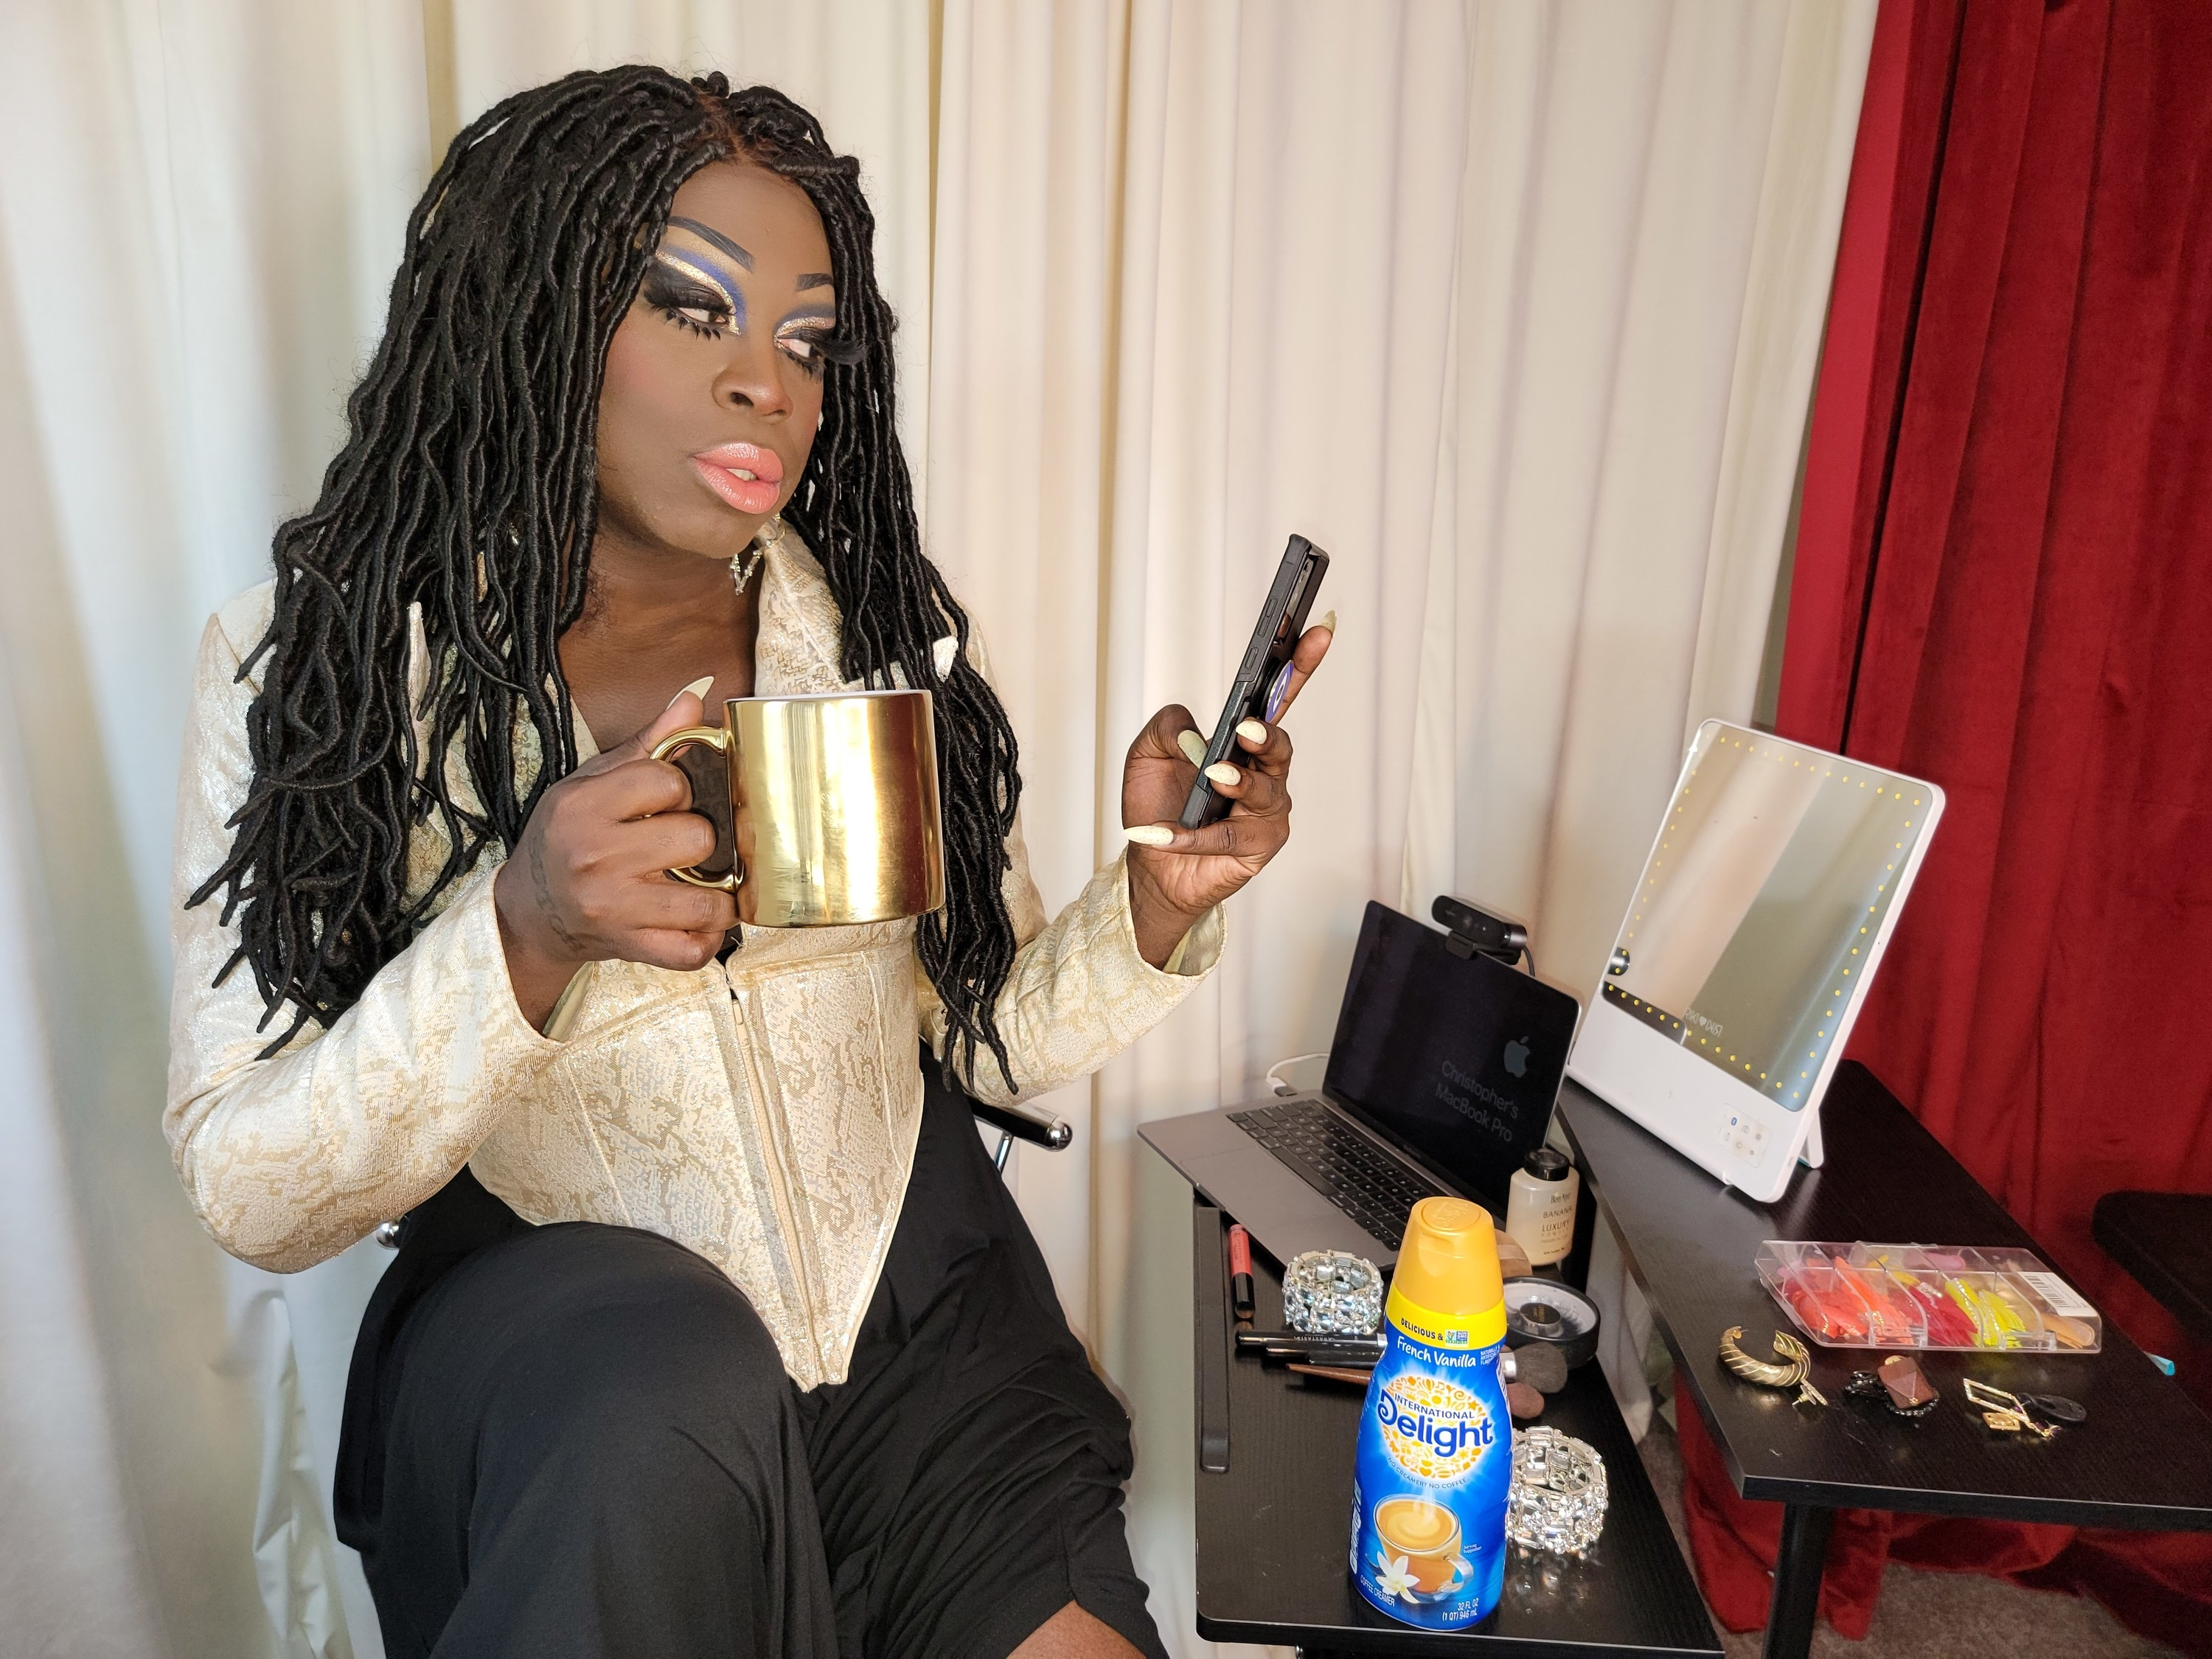 Photo of Bob looking at her phone while at her phone and sipping coffee from a gold mug